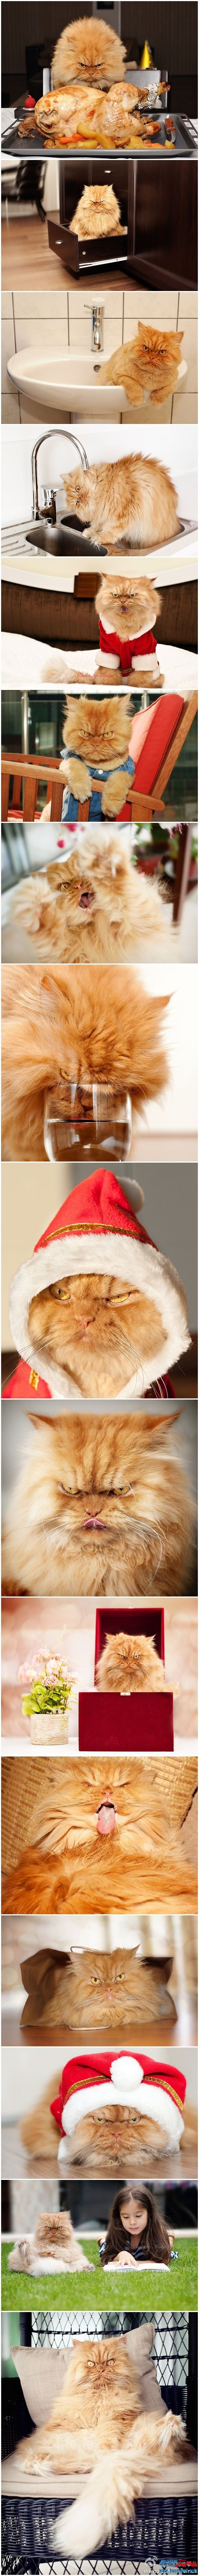 Hahaha poor kitty looks so pissed and insane but I'm sure he/she is a ball of sweetness